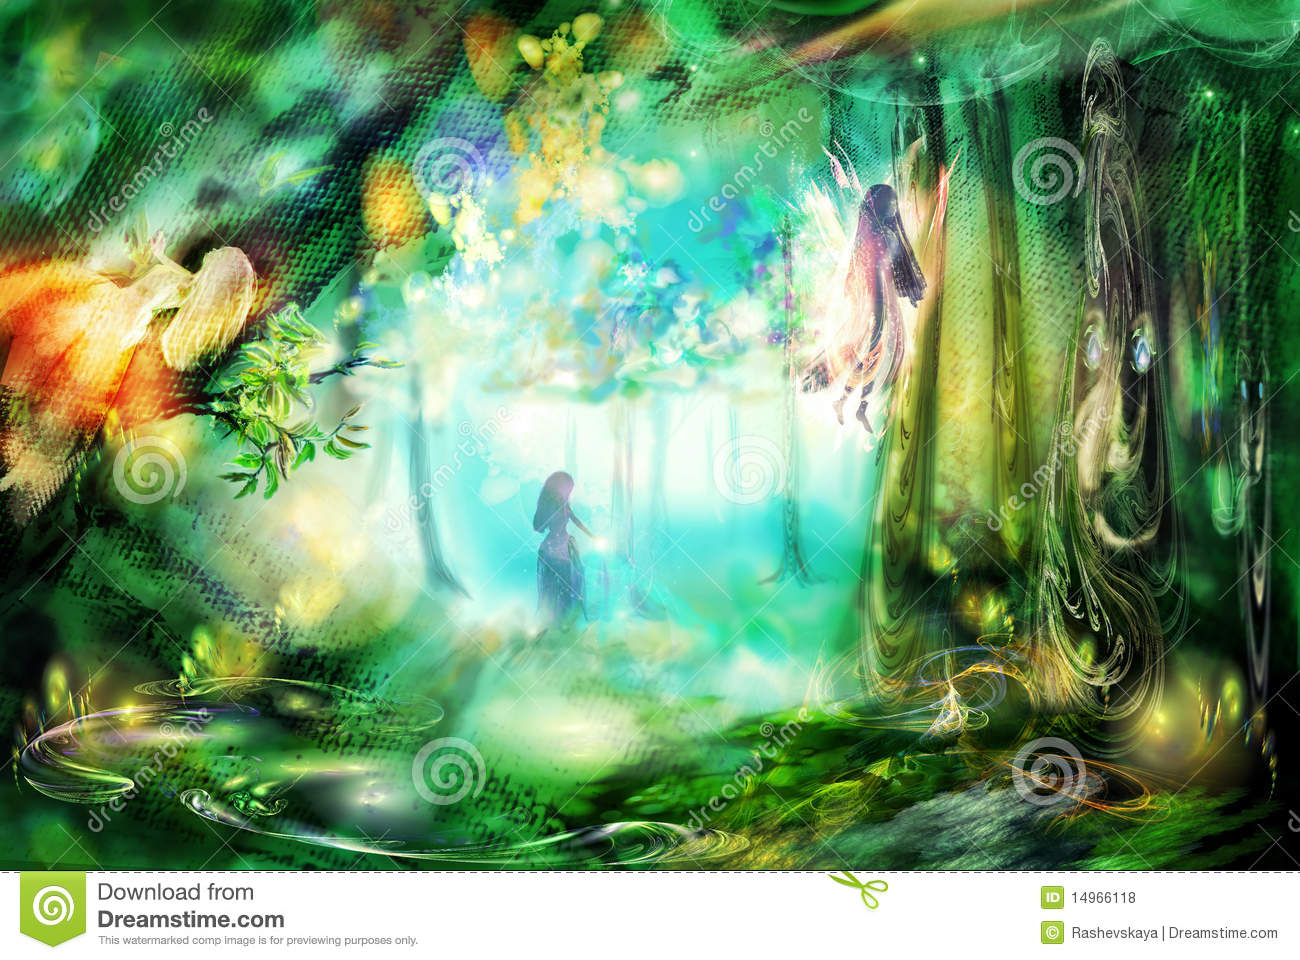 3d Mushroom Garden Wallpaper Download The Magic Forest With Fairies Stock Illustration Image